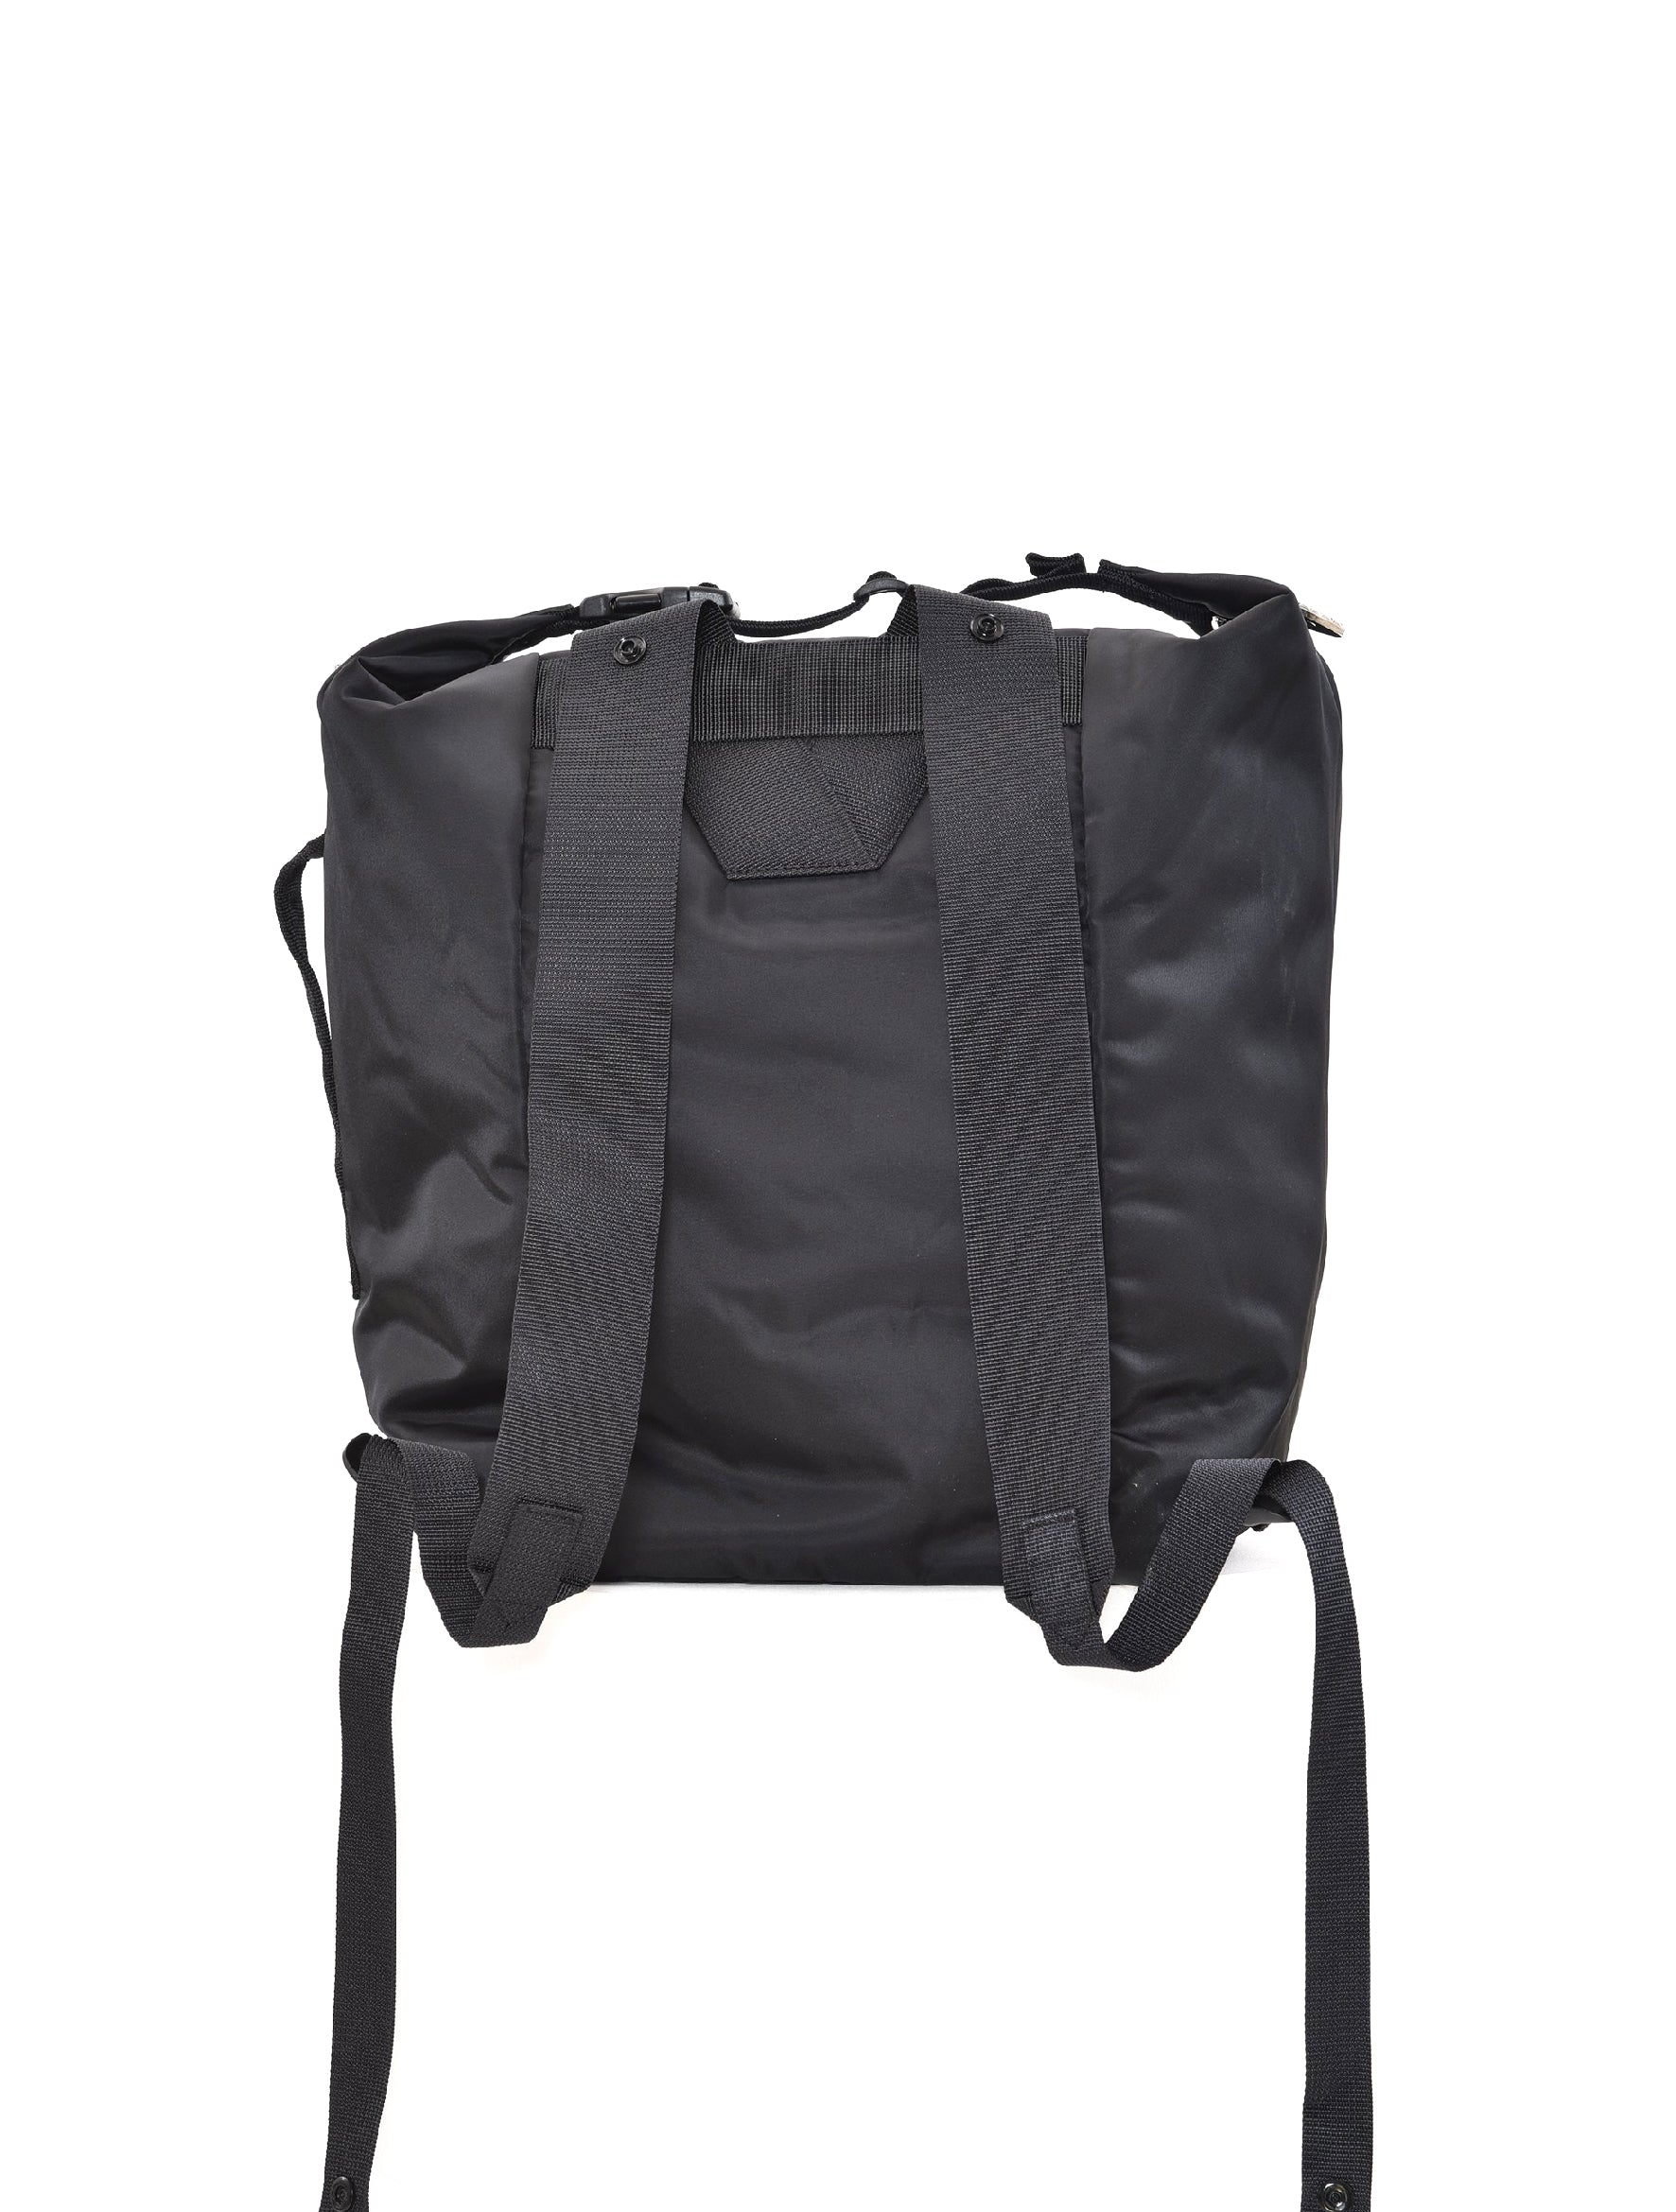 Toga Pulla x Porter Bonsac Backpack